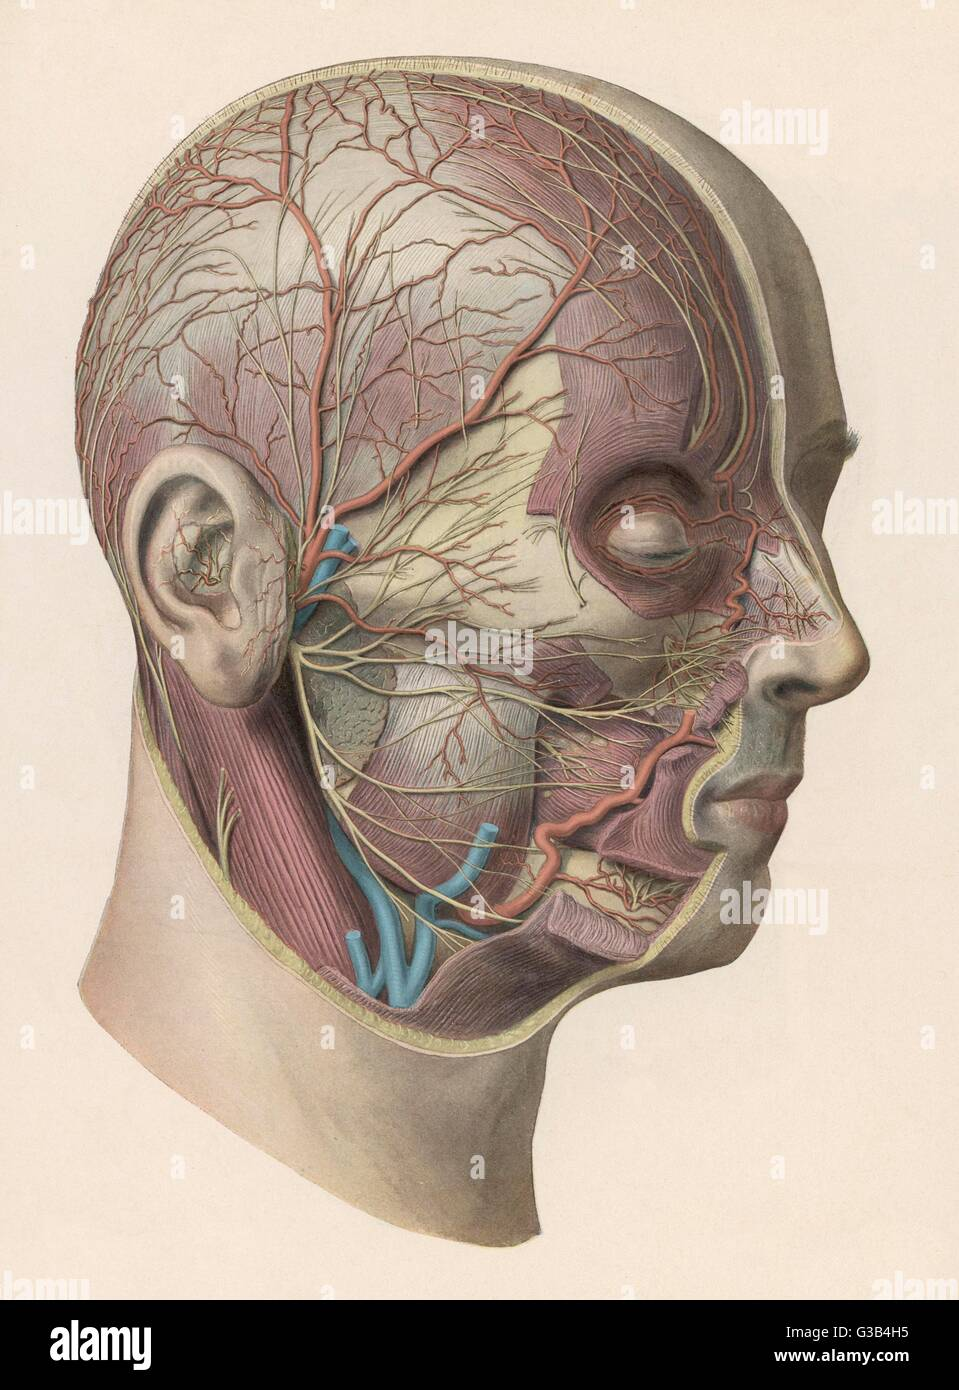 hight resolution of detailed diagram showing muscles and veins inside of the head date circa 1900